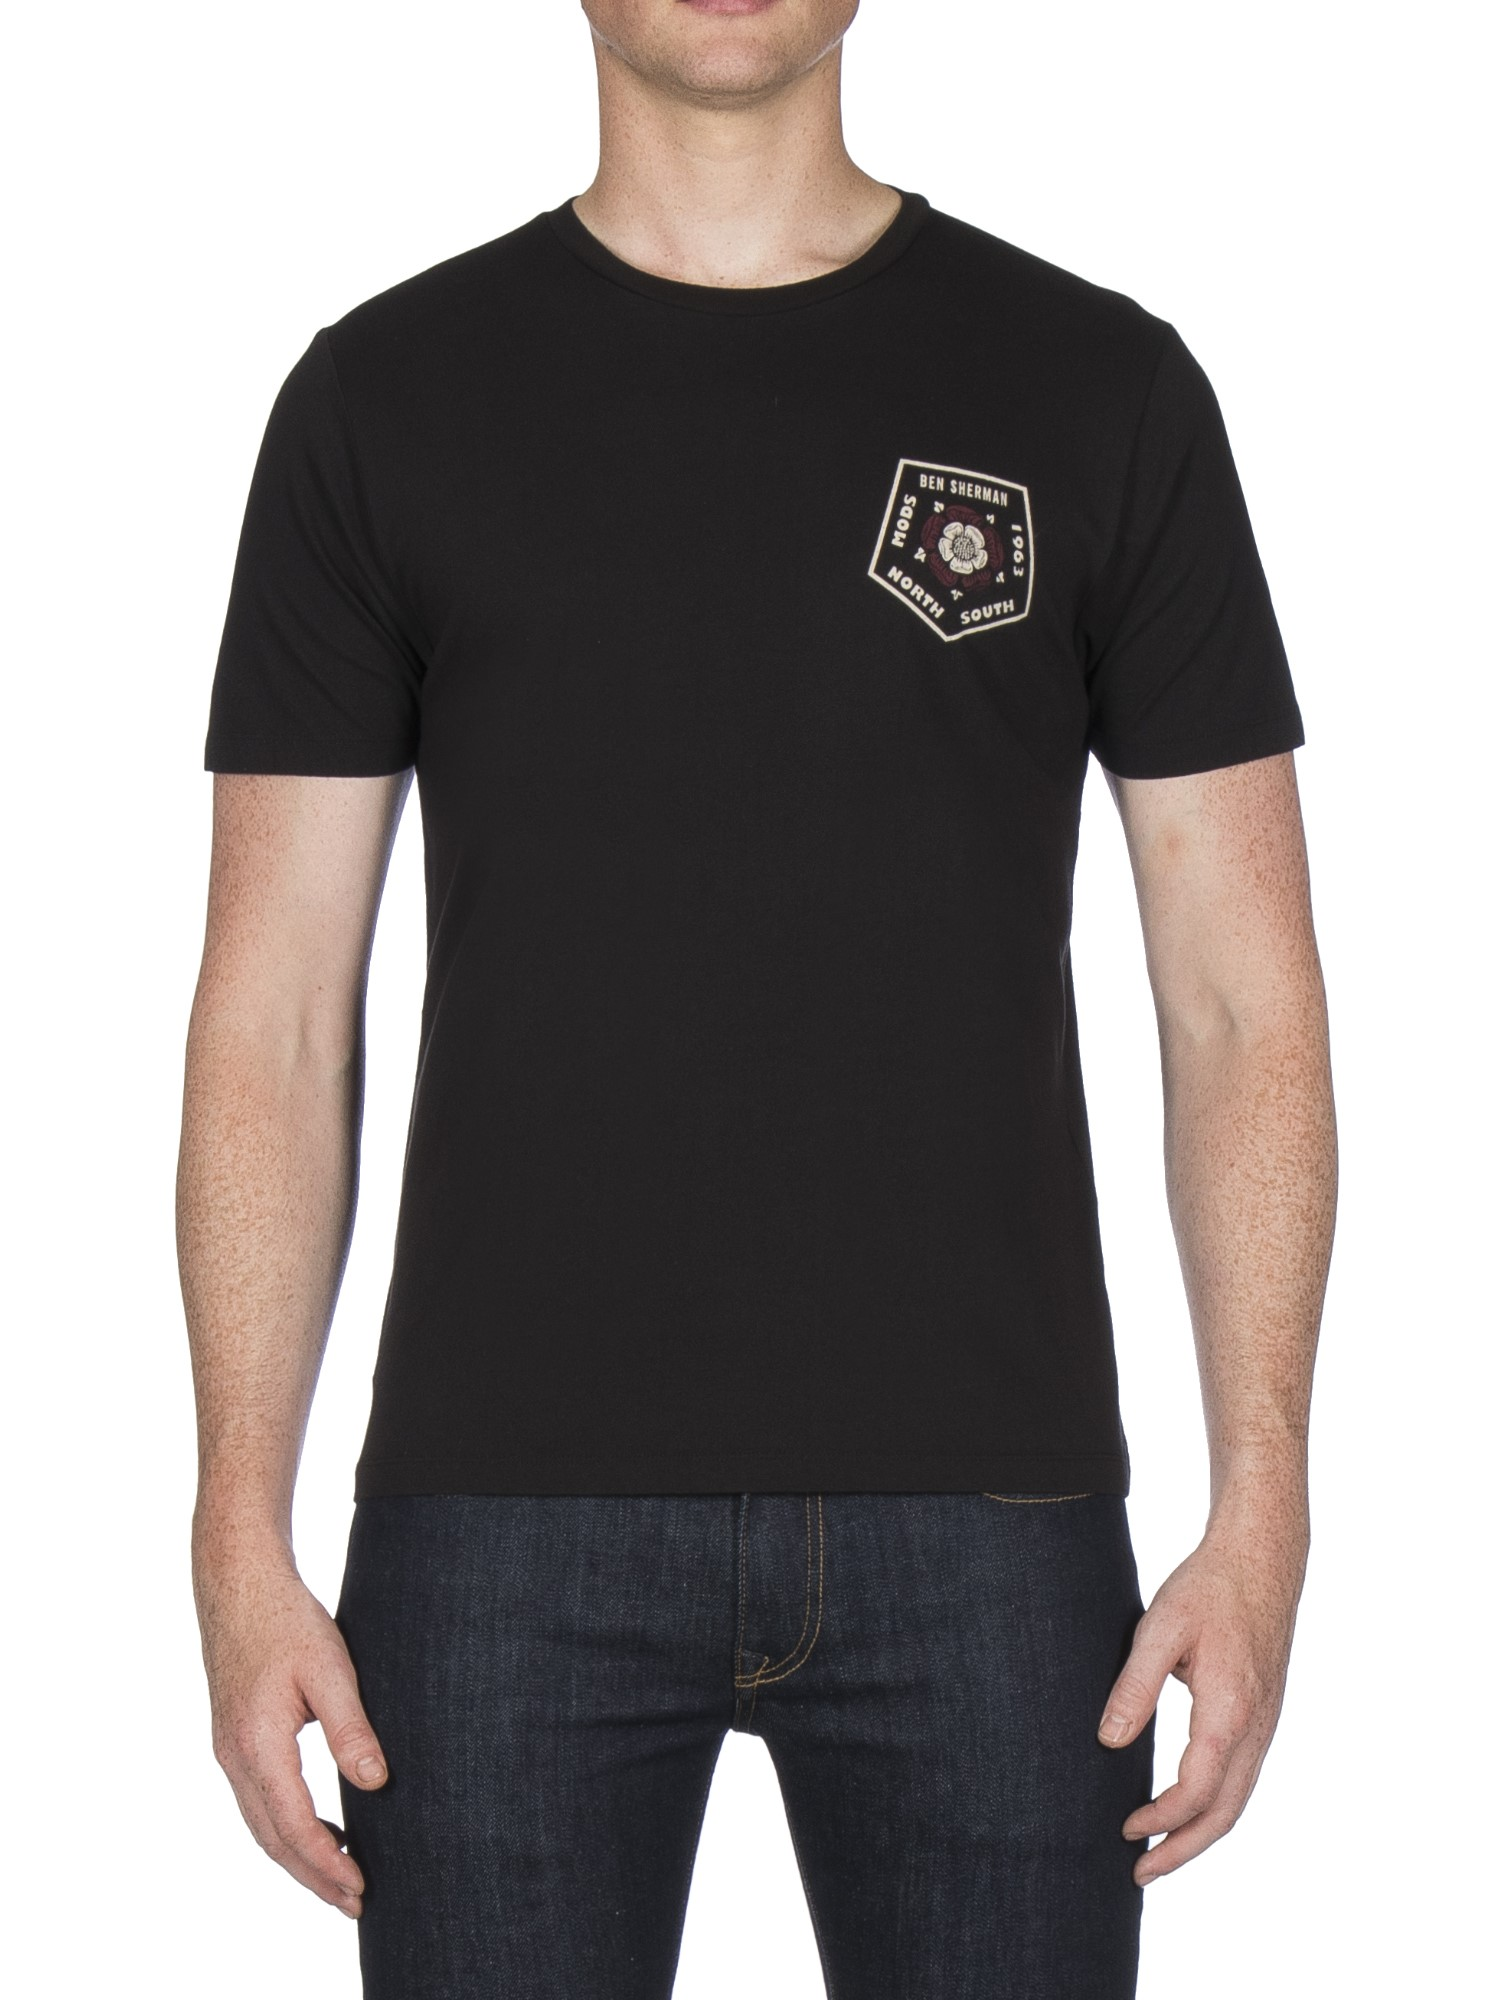 Ben Sherman Black Badge Back Print T-Shirt